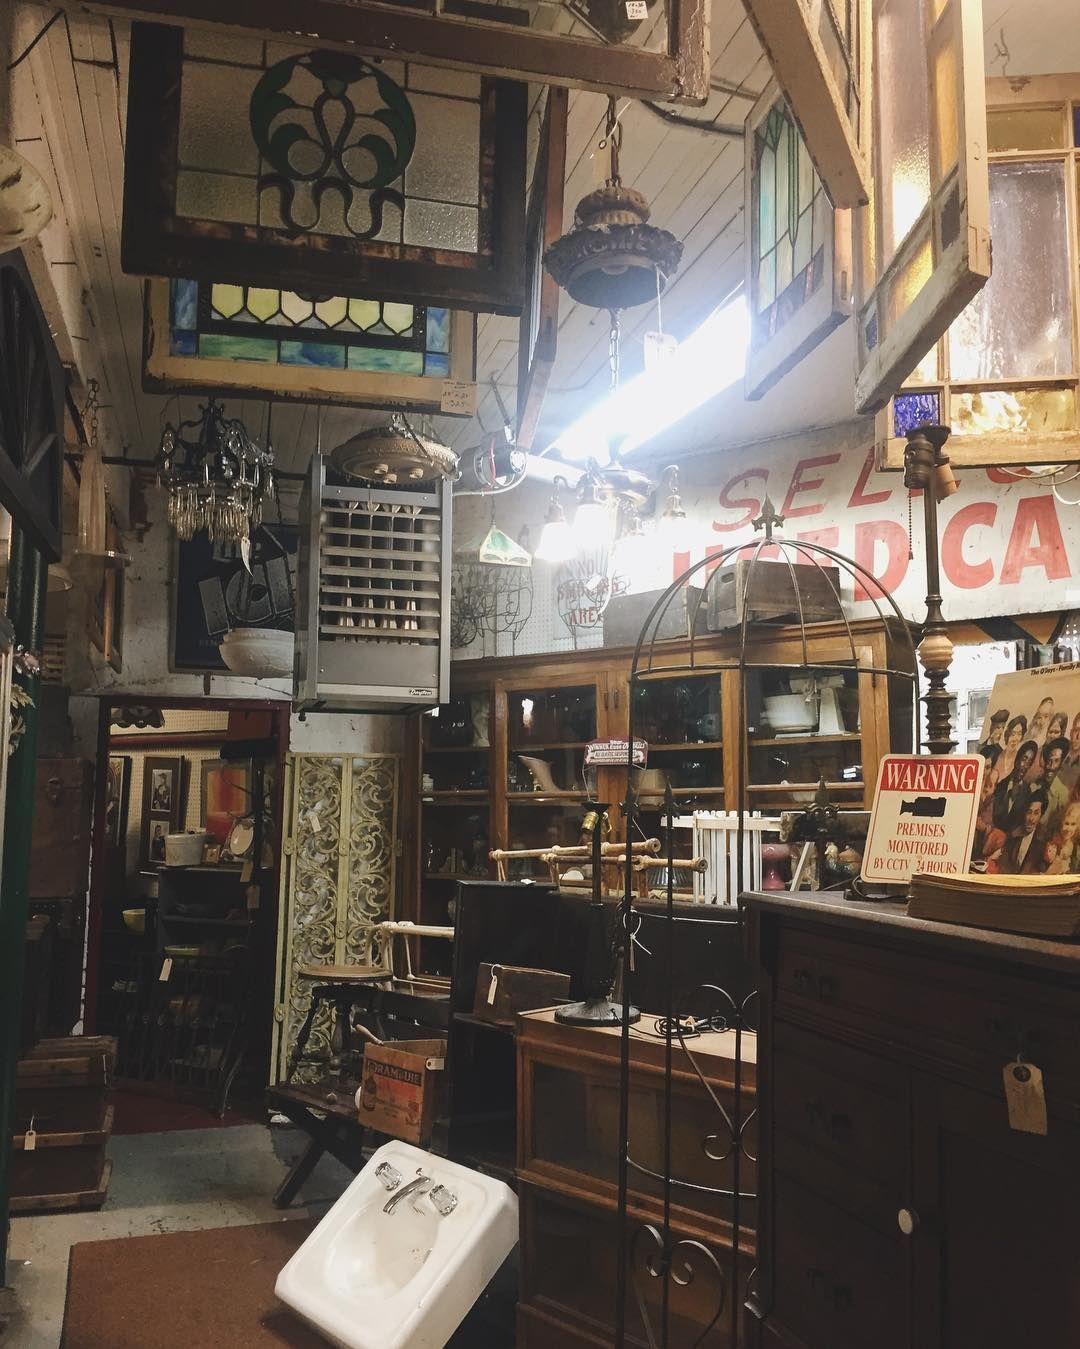 The best furniture and antique stores in Detroit, mapped - The Best Furniture And Antique Stores In Detroit, Mapped Pinterest